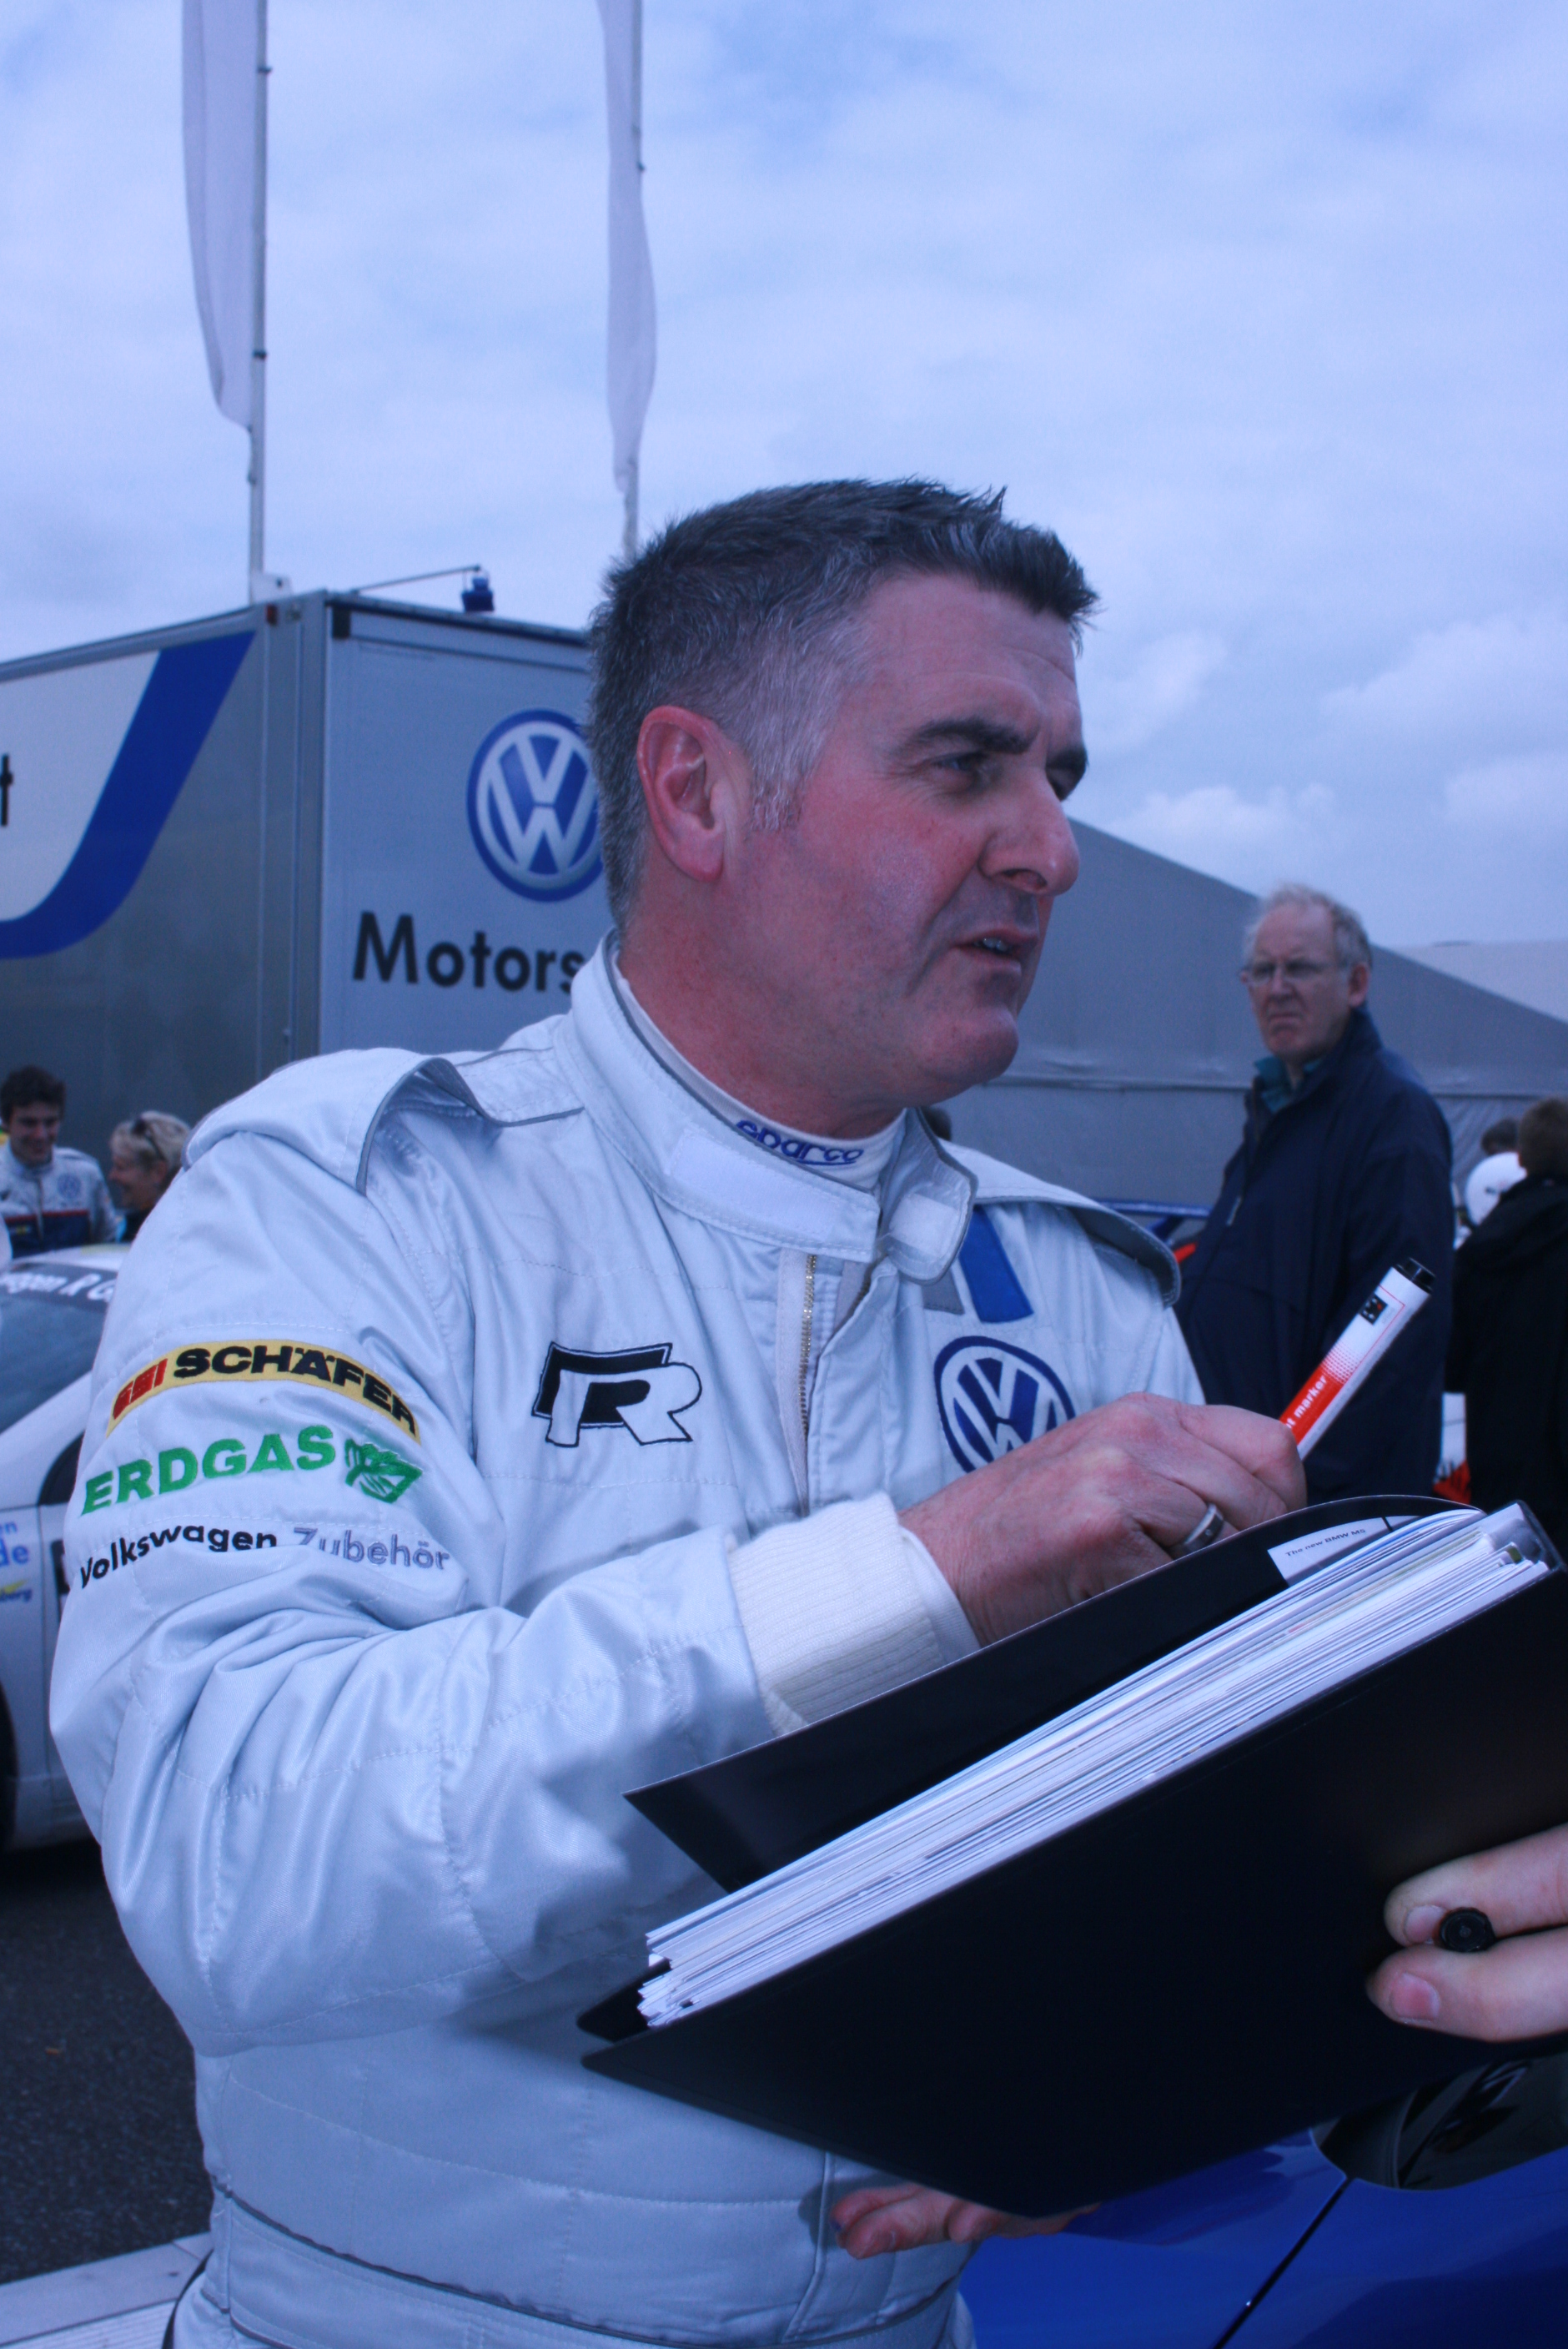 The 54-year old son of father (?) and mother(?) Martin Donnelly in 2018 photo. Martin Donnelly earned a  million dollar salary - leaving the net worth at 0.2 million in 2018